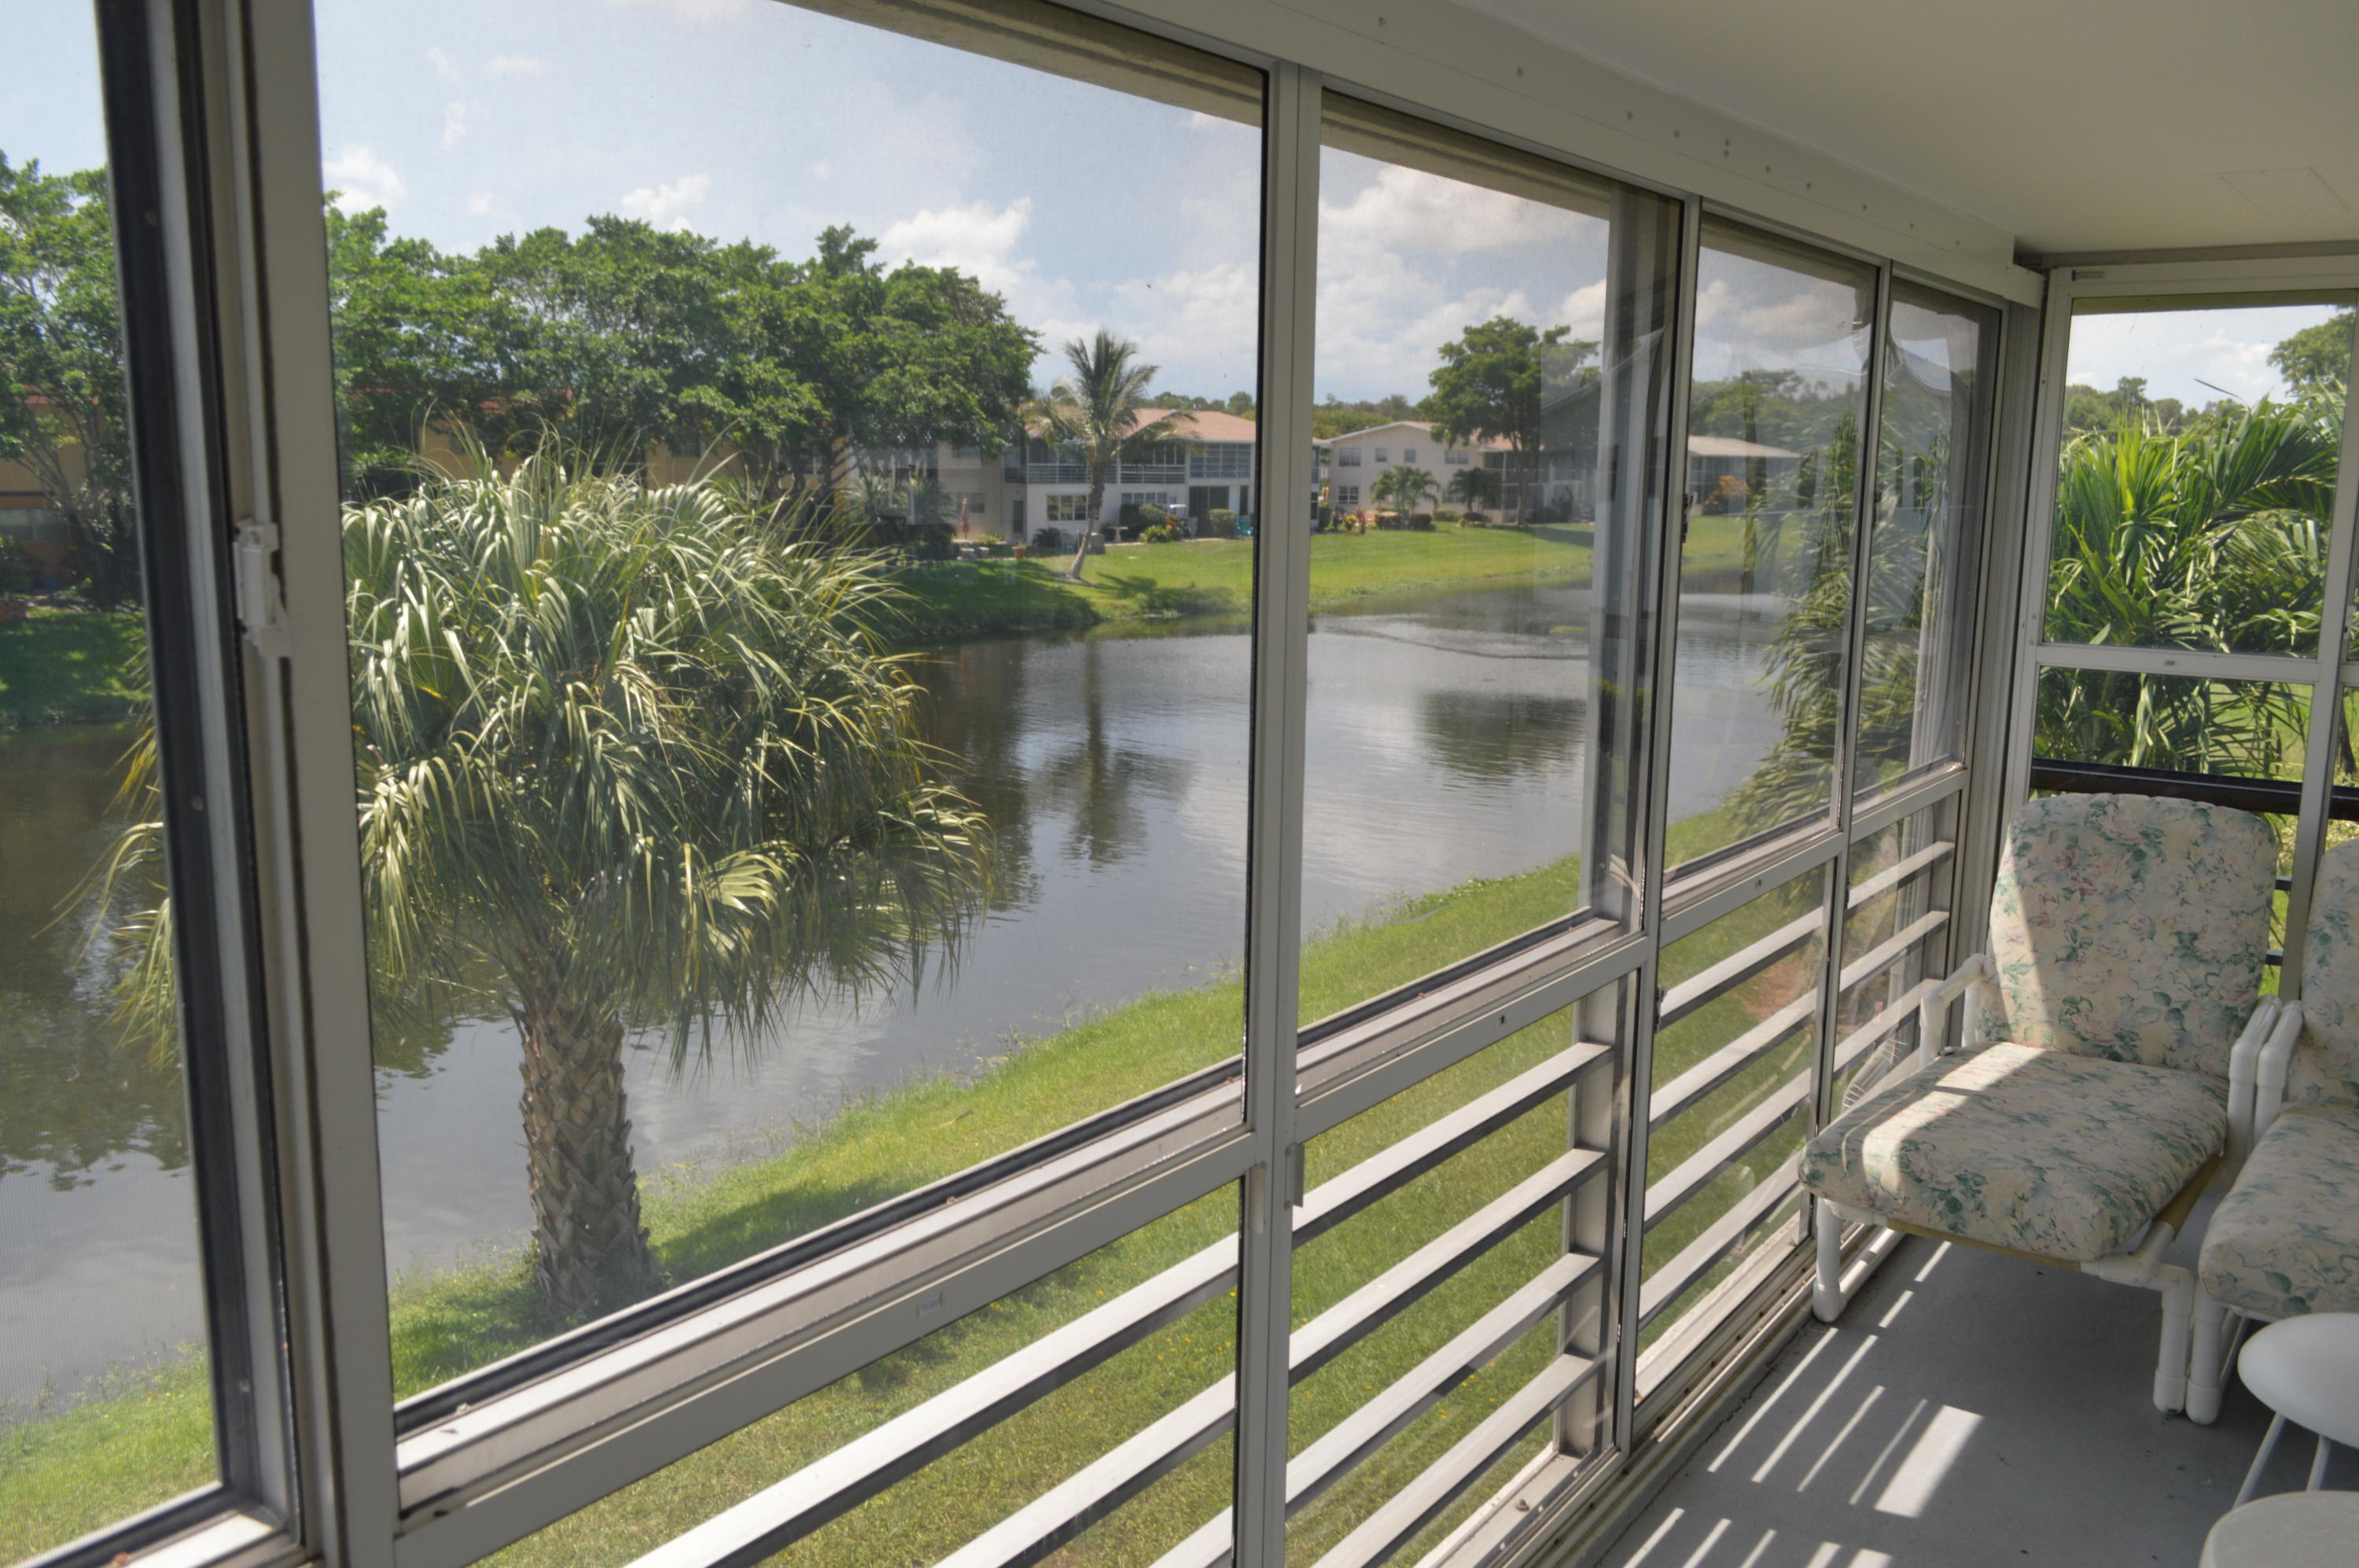 A lovely 2 bedroom 1 1/2 baths END UNIT with additional windows to let in the sunlight.  This furnished Condo has a brand new AIR CONDITIONER installed in July of 2019.  Canal views from the spacious covered and screened balcony and plenty of room in the walk-in closet. Come and enjoy all that this Community has to offer.  55 and over community.  Lamps and pictures on walls and personal items do not convey.